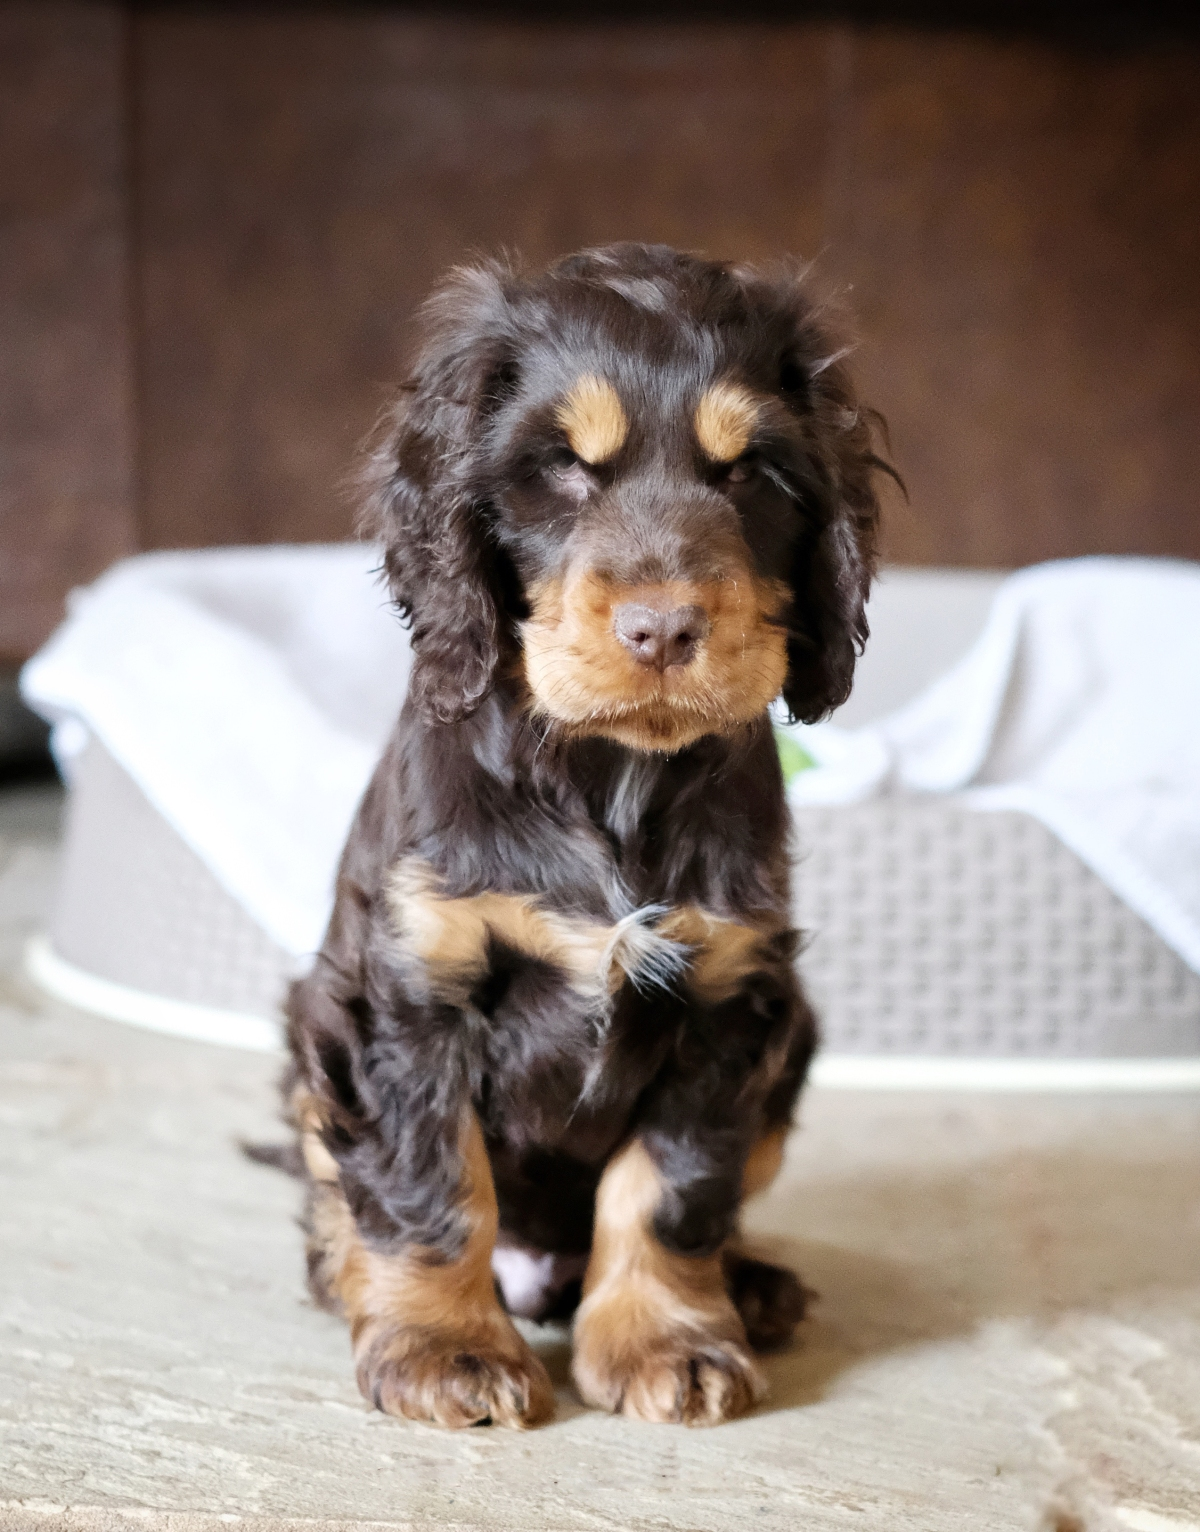 Fred, 2 months old chocolate and tan english cocker spaniel puppy / how to help puppy settle in new home / first puppy tips and advice / first published on Perfect cocker spaniel blog (C) Natalia Ashton